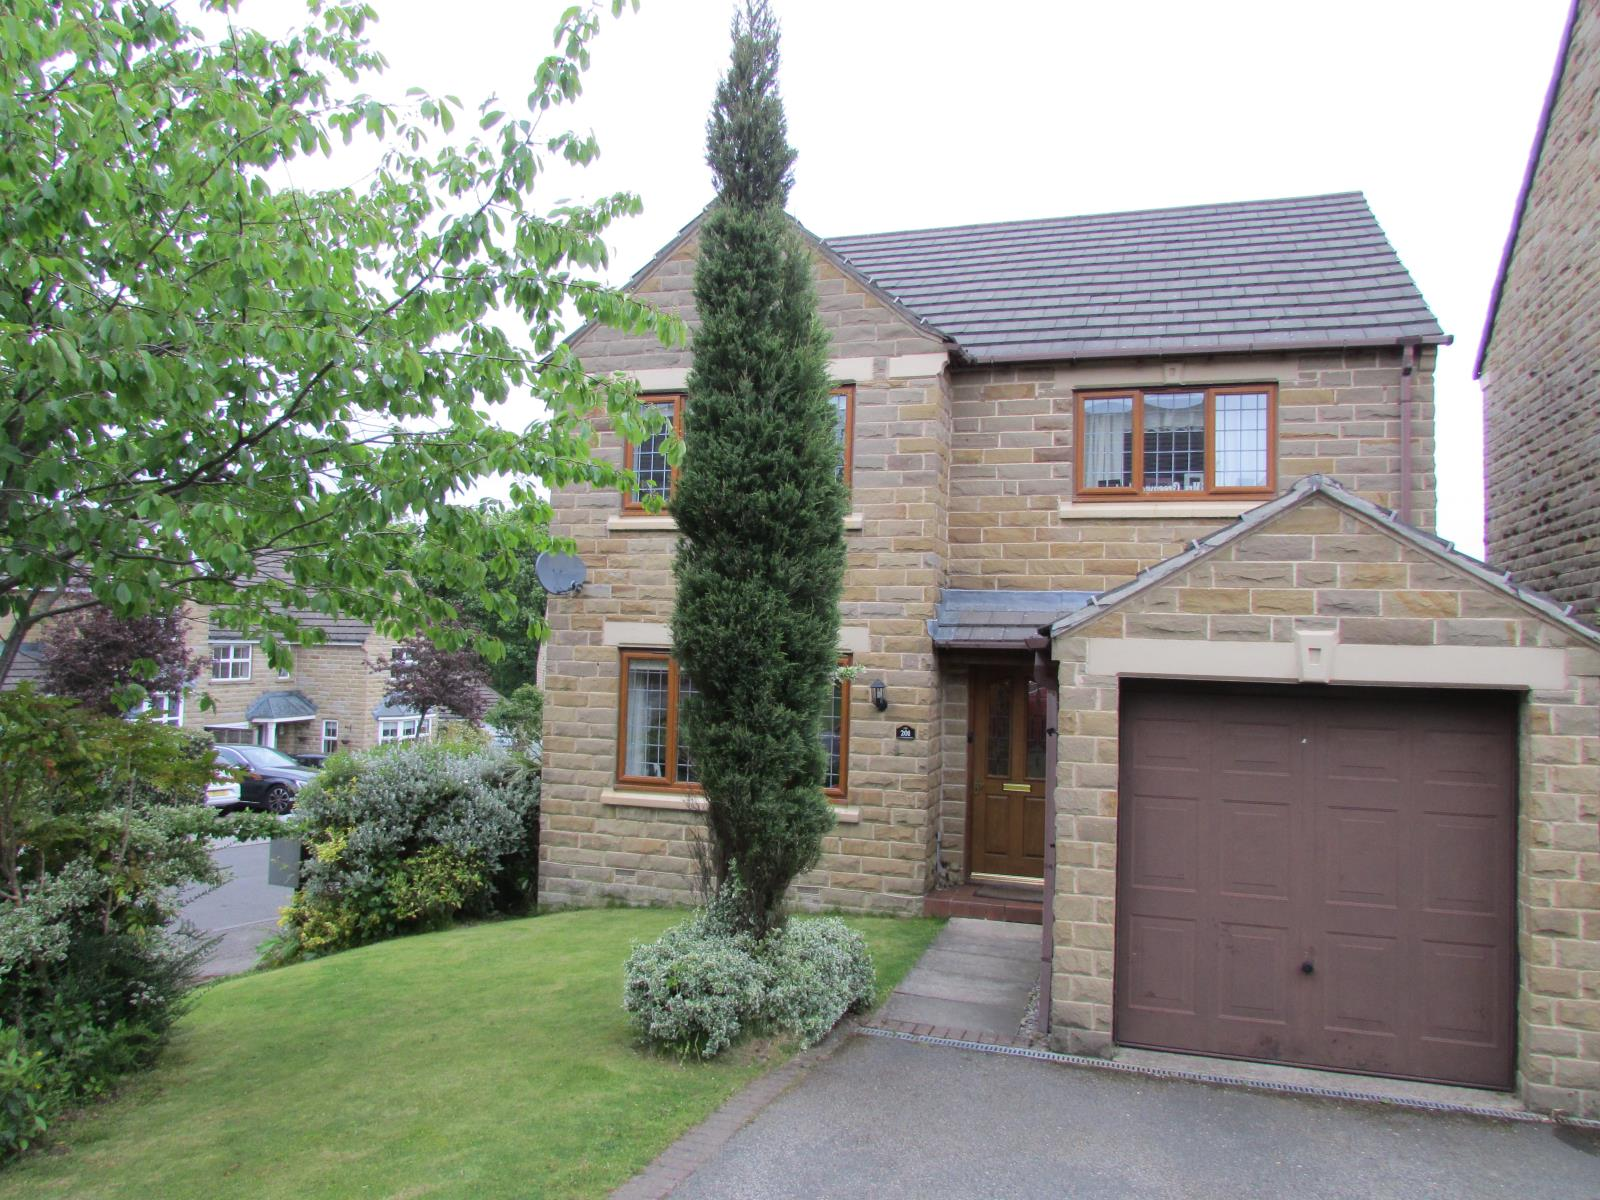 201 Hawthorne Way, Shelley, Huddersfield, HD8 8PZ